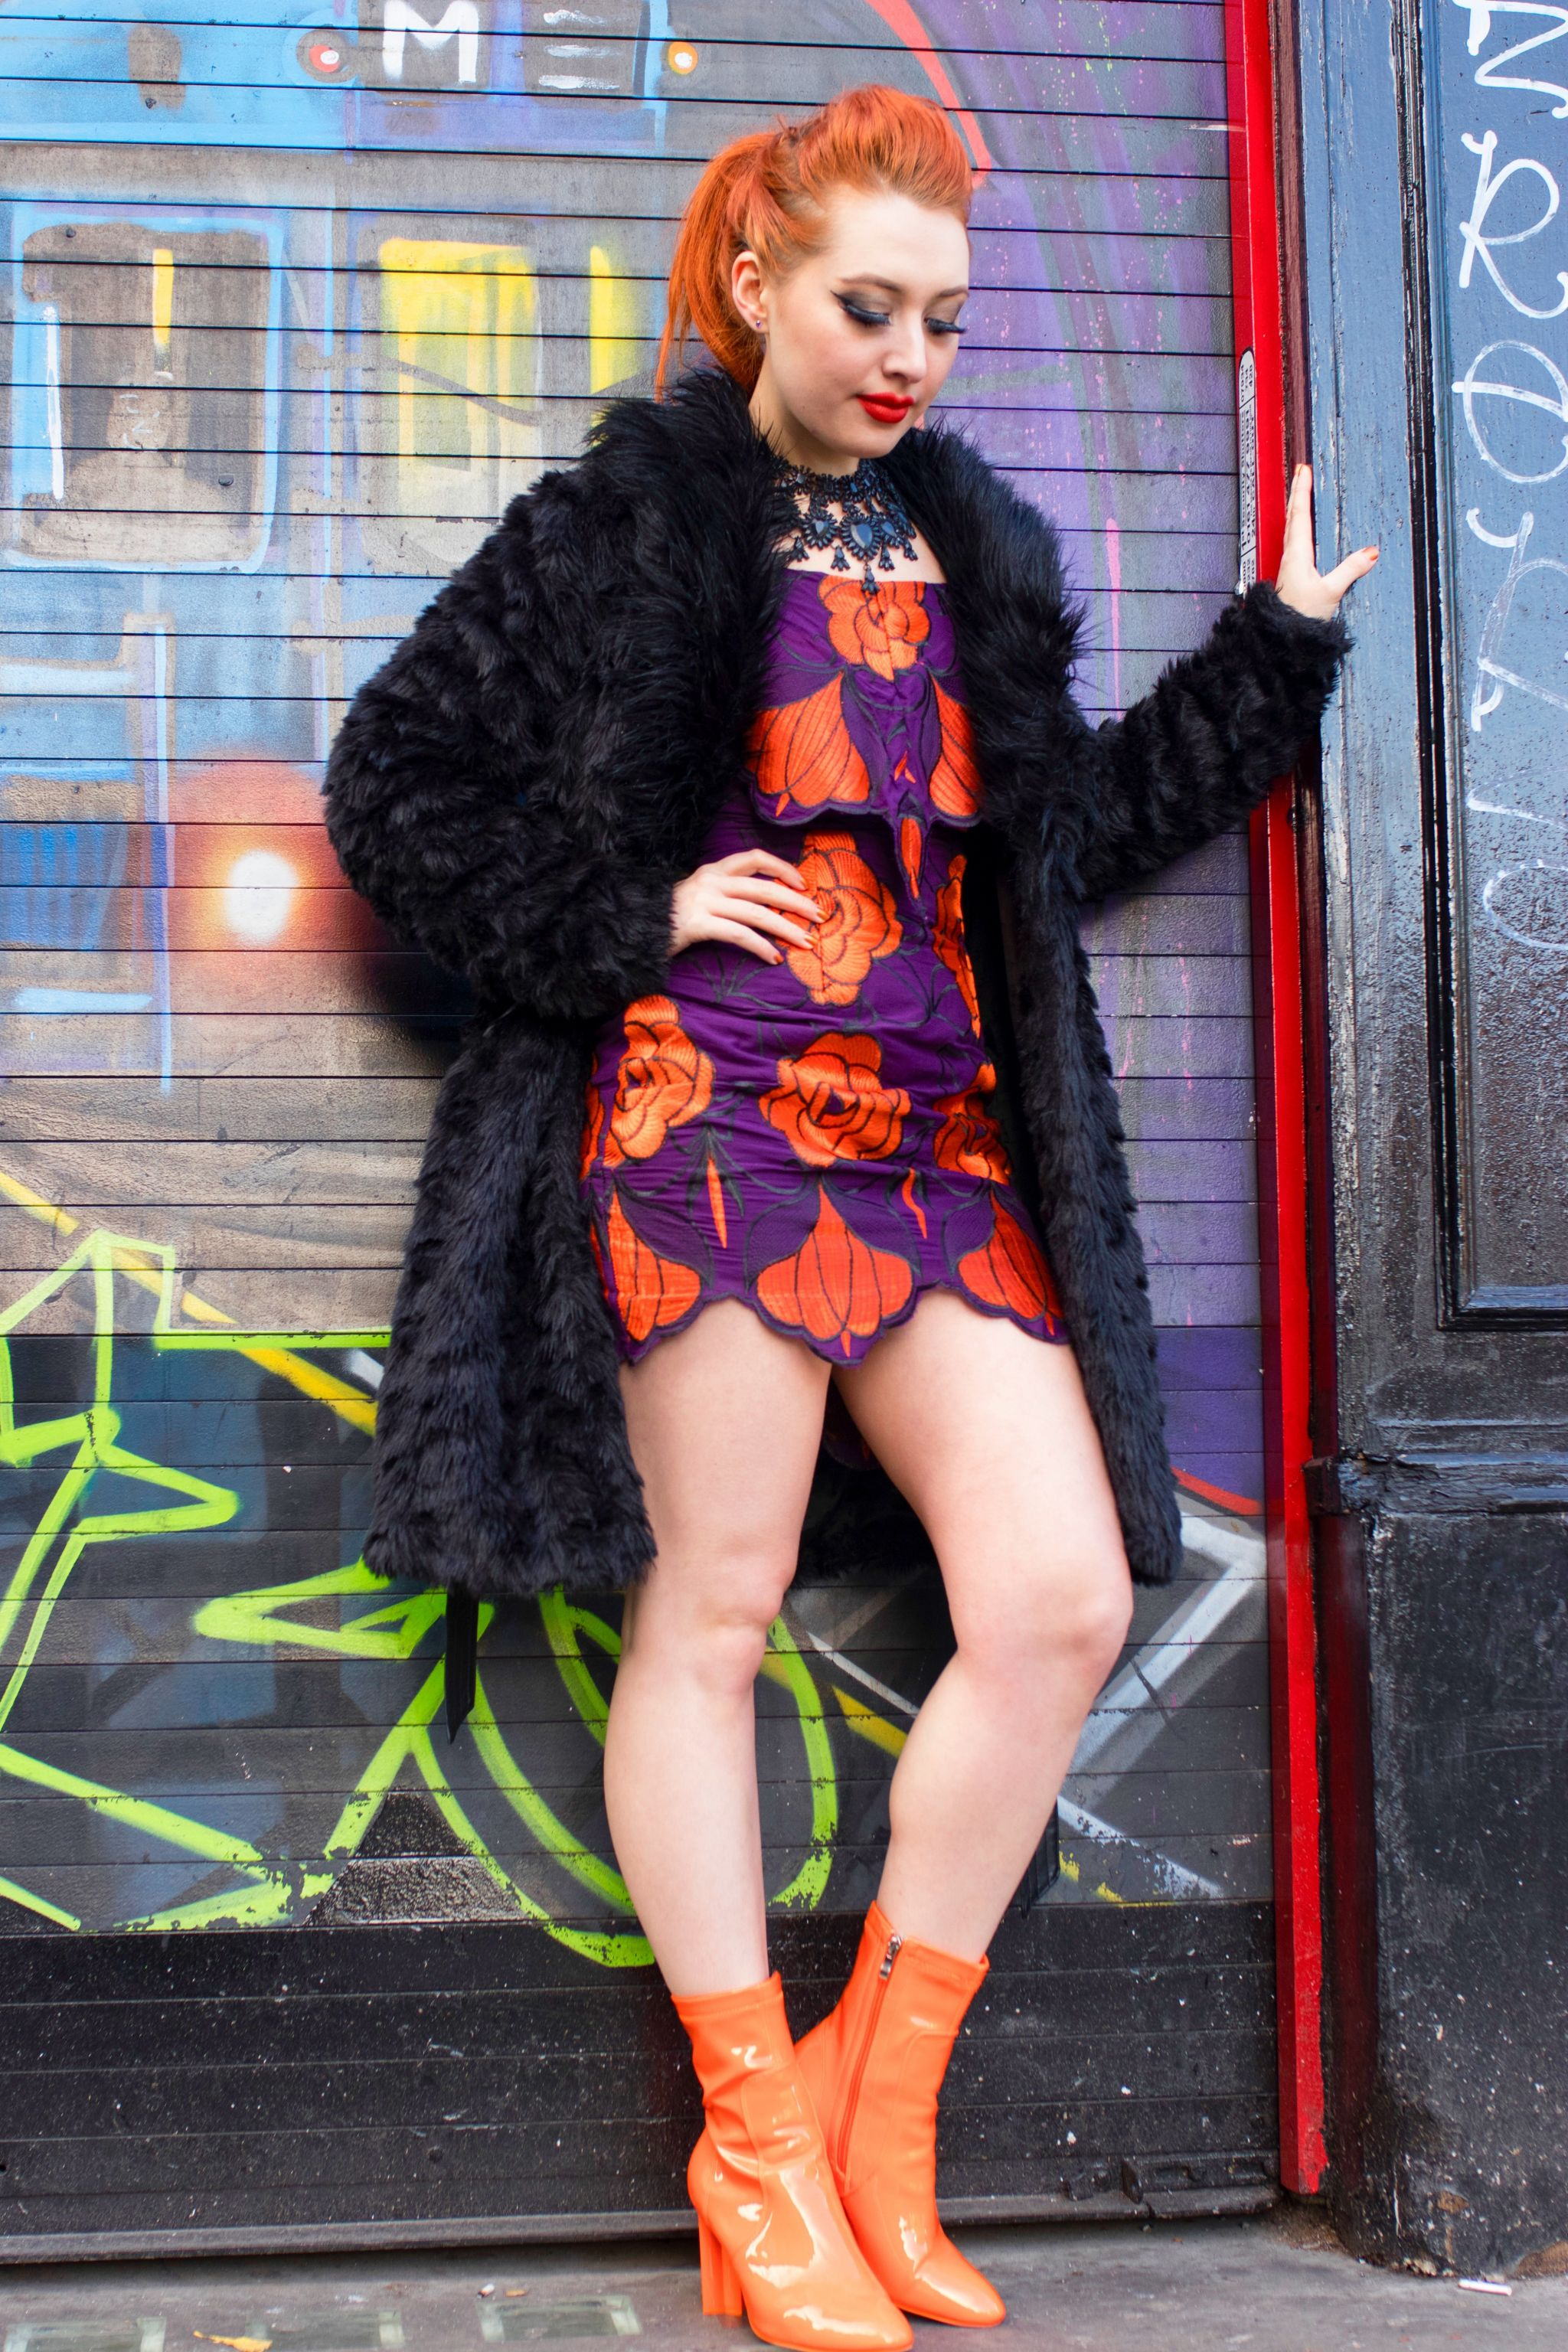 Blogger Alice from Twenty-Something City wears Cari's Closet for alternative Christmas party outfit ideas